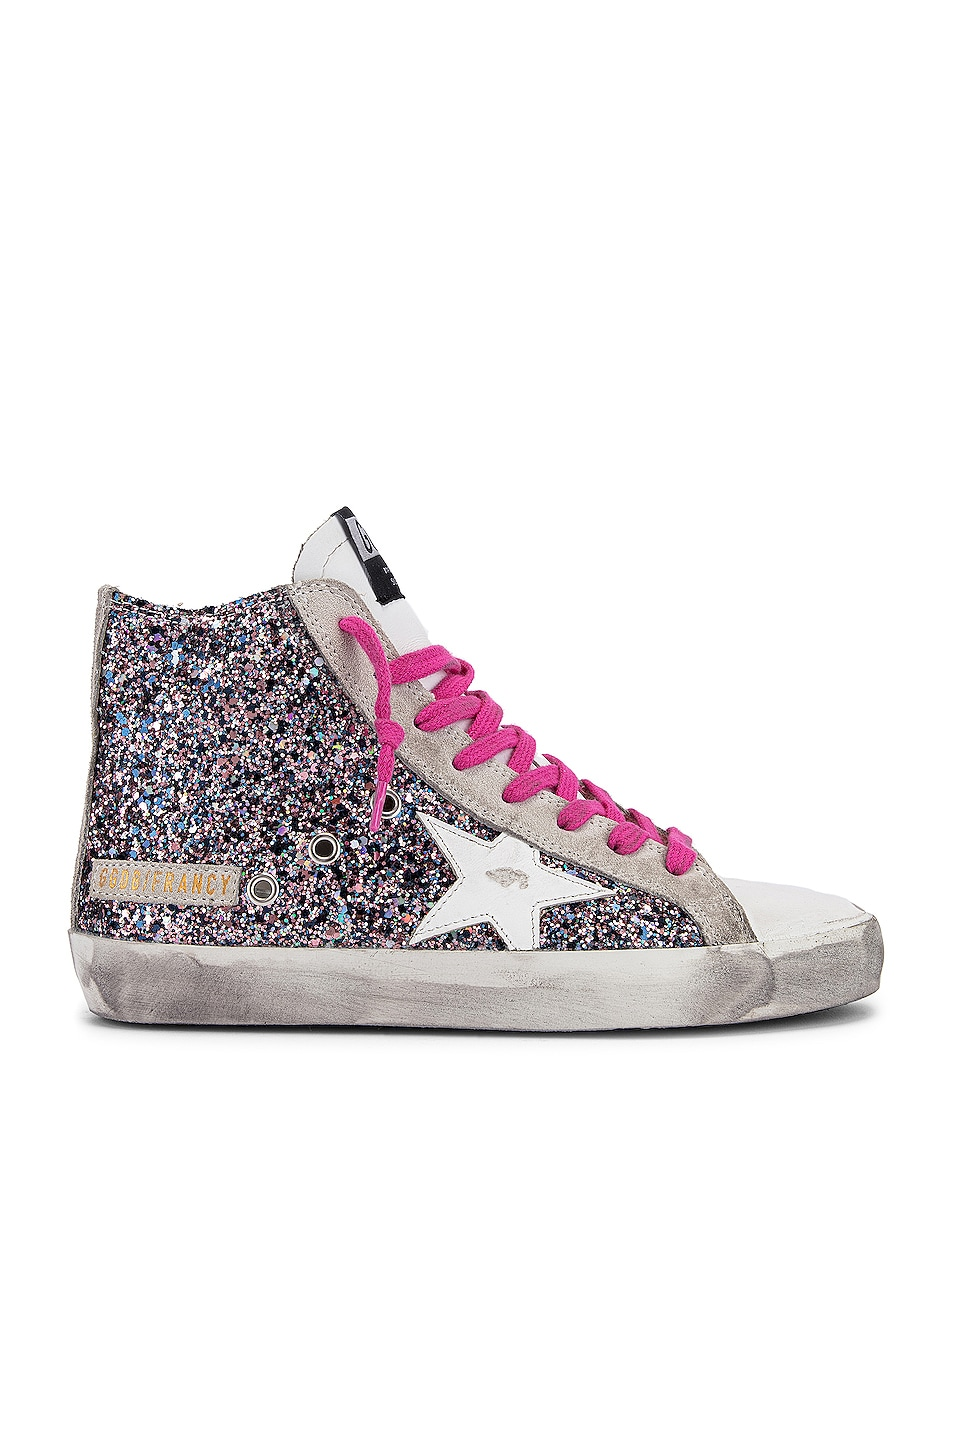 Image 1 of Golden Goose Francy Sneaker in White, Pink & Grey Glitter